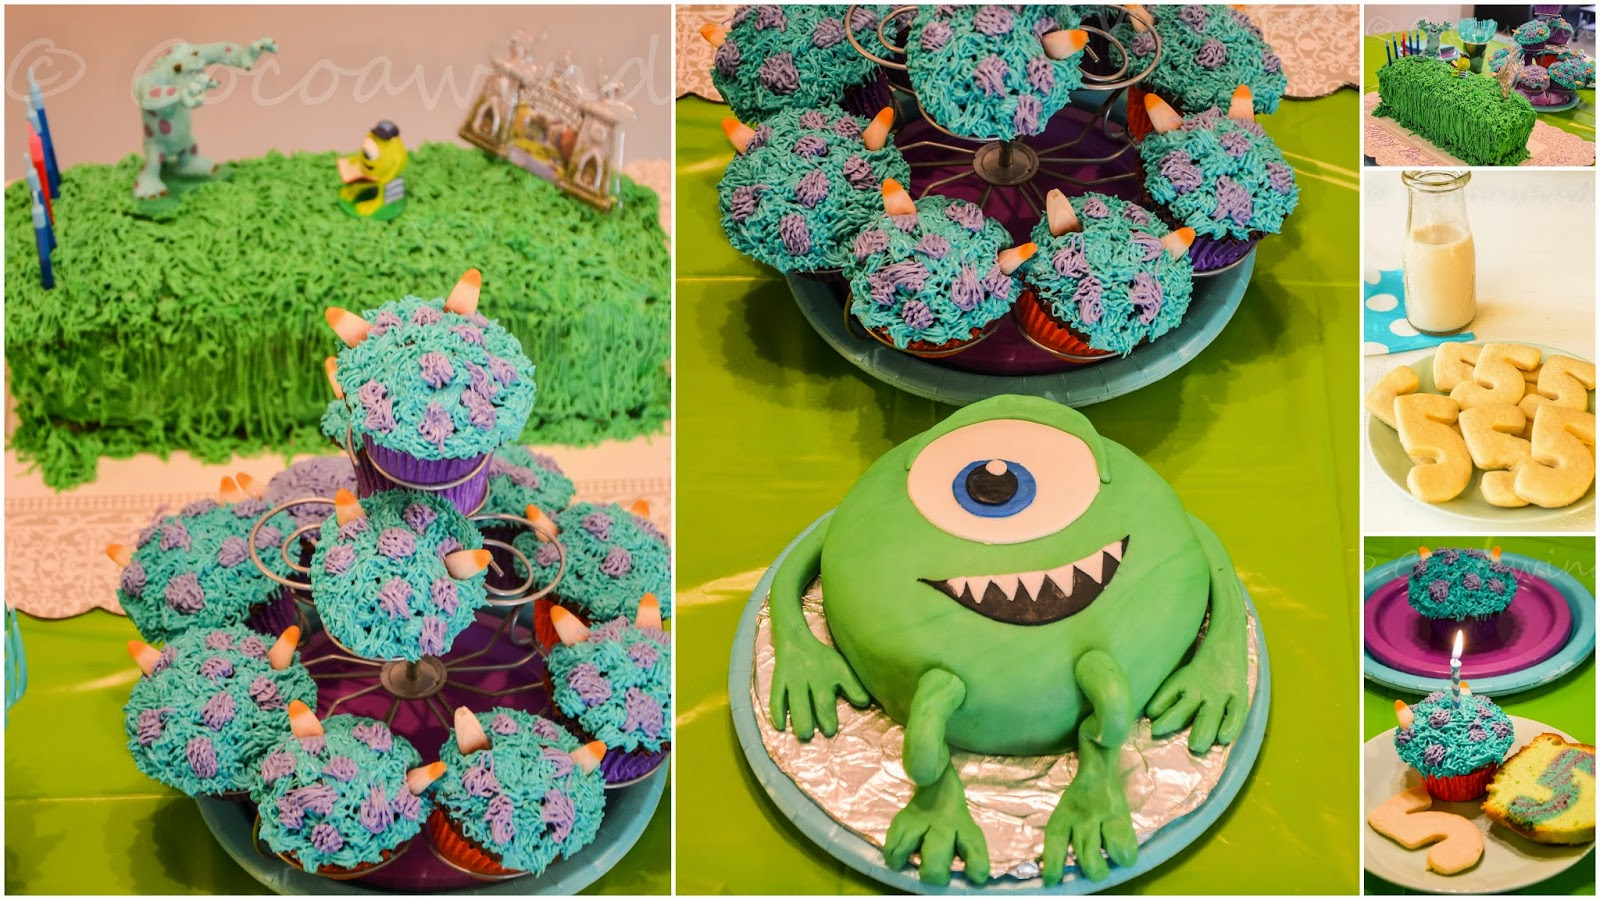 Mike Wazowski Birthday Cake, Sully Cupcake, Surprise inside Cake